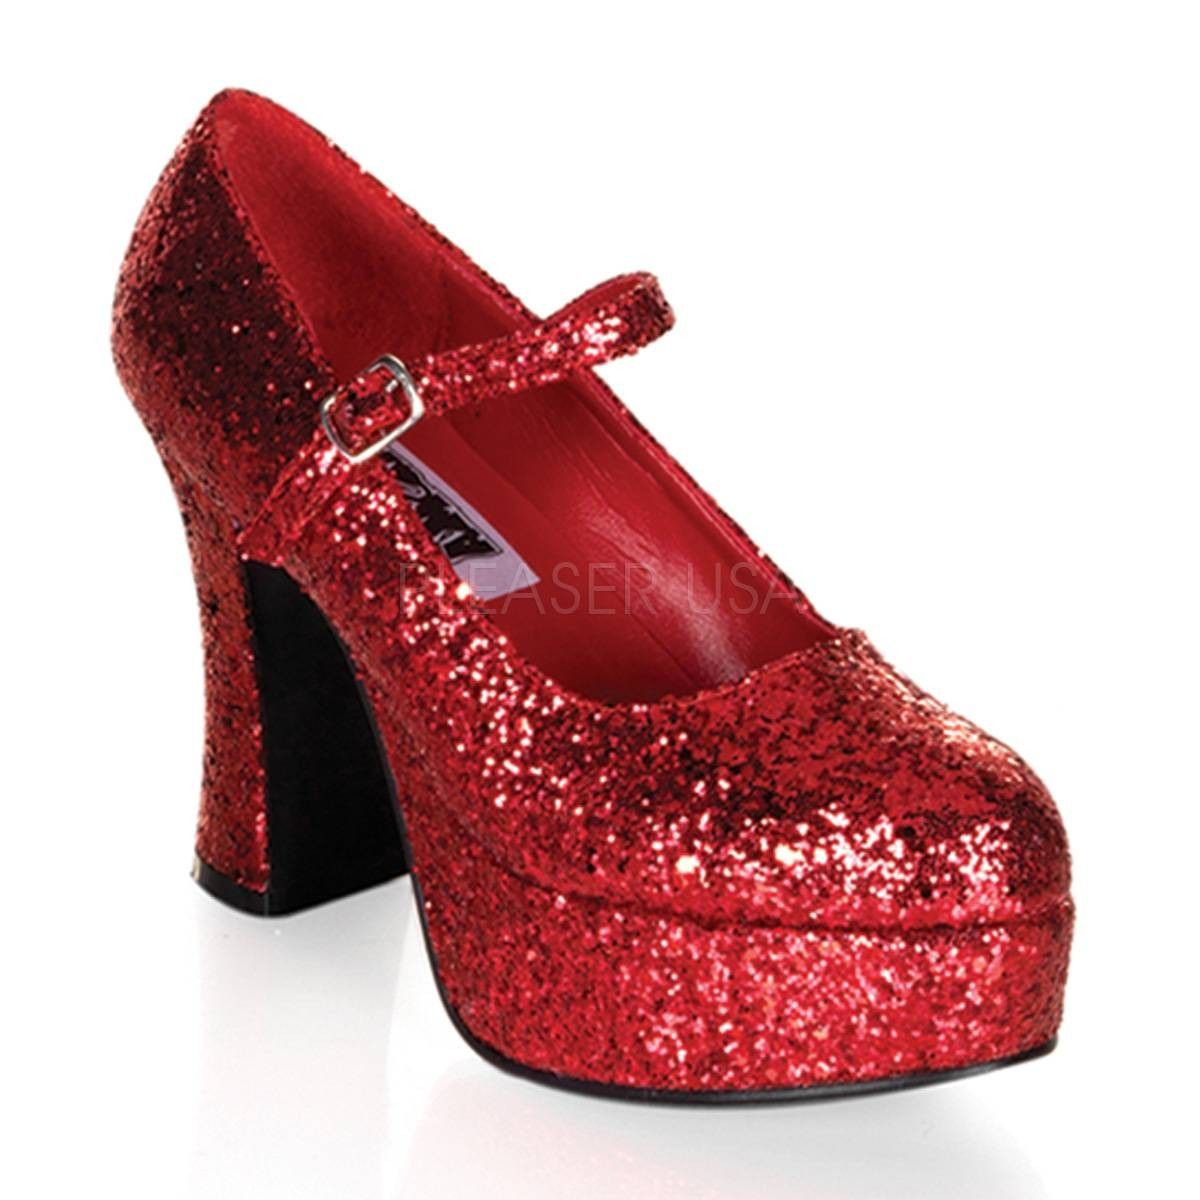 25e7ba83a41d MARYJANE 50G ° Damen Pumps ° Rot Glitter ° Funtasma  pumps  damenschuhe   fashion